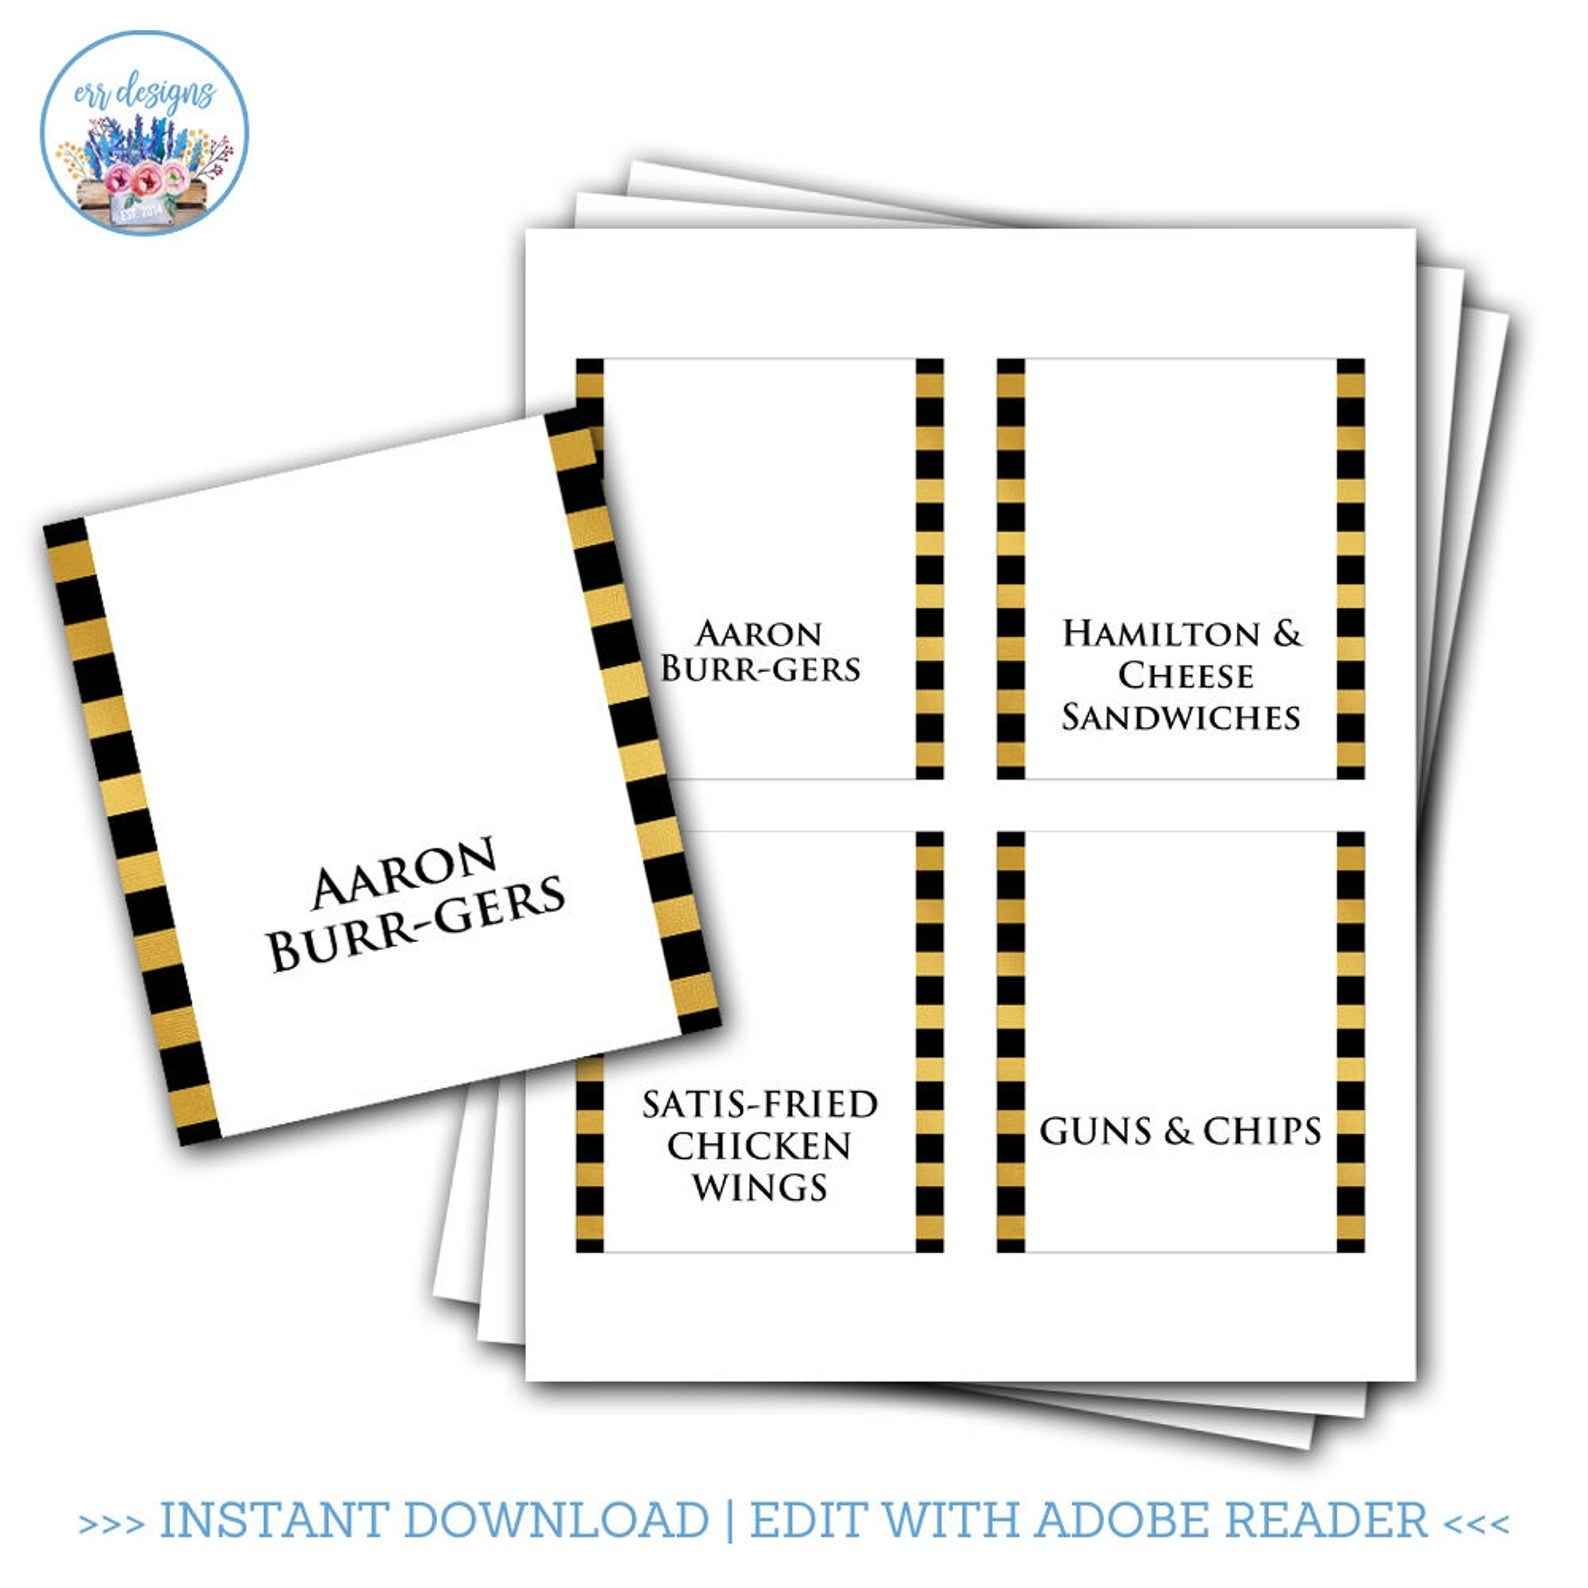 Downloads for Aaron Burr-gers, Satis-fried chicken wings, Guns and Chips, and Hamilton & Cheese Sandwiches